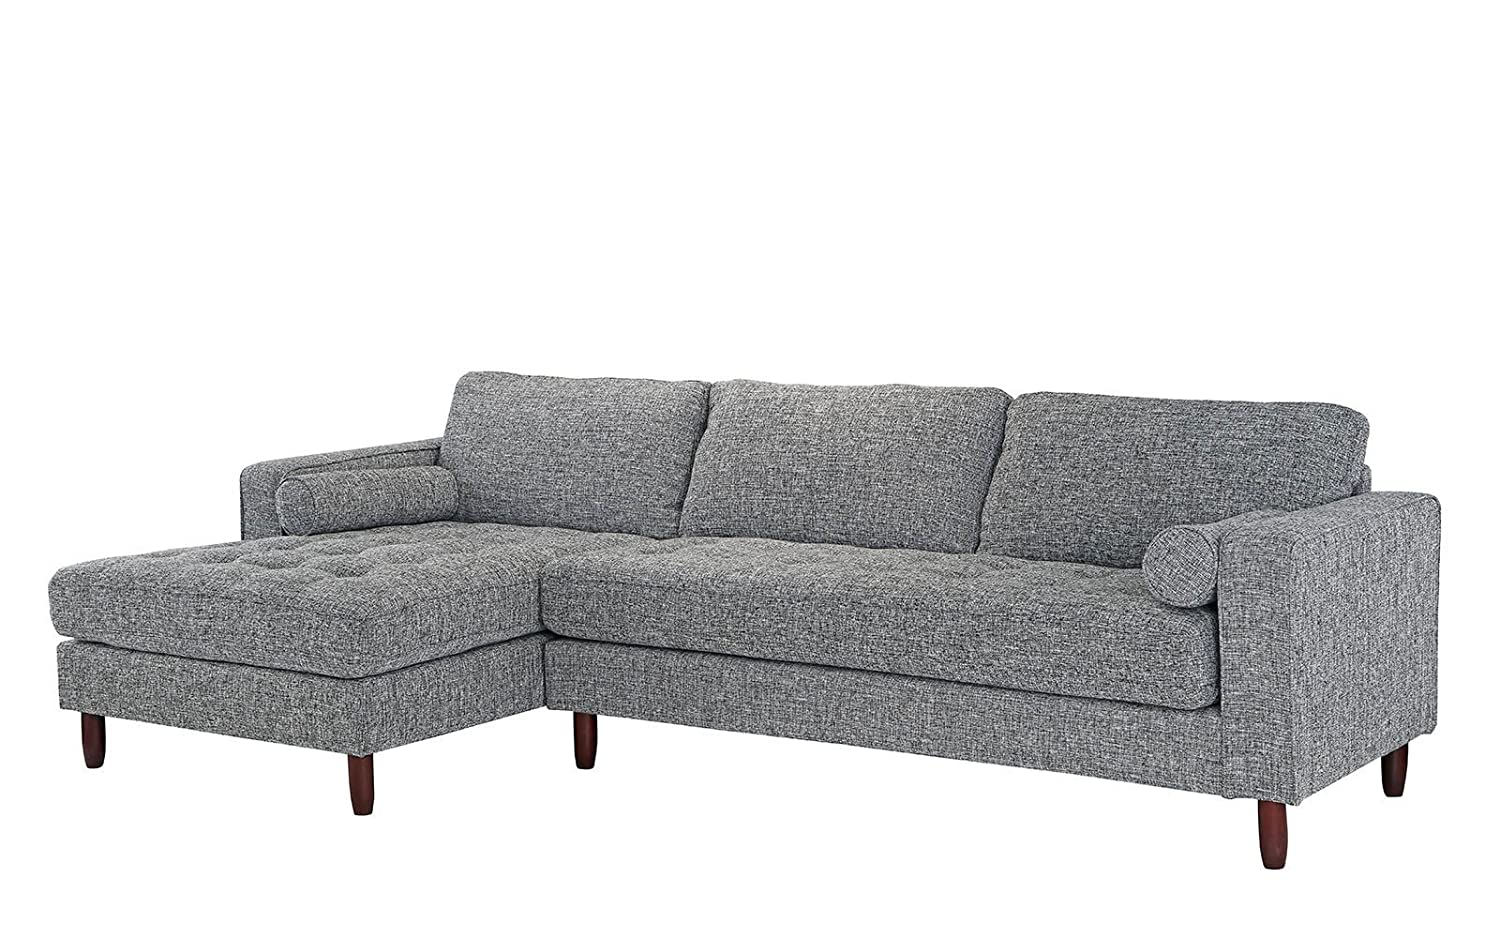 Amazon com divano roma furniture mid century modern tufted fabric sectional sofa l shape couch with extra wide chaise lounge light grey kitchen